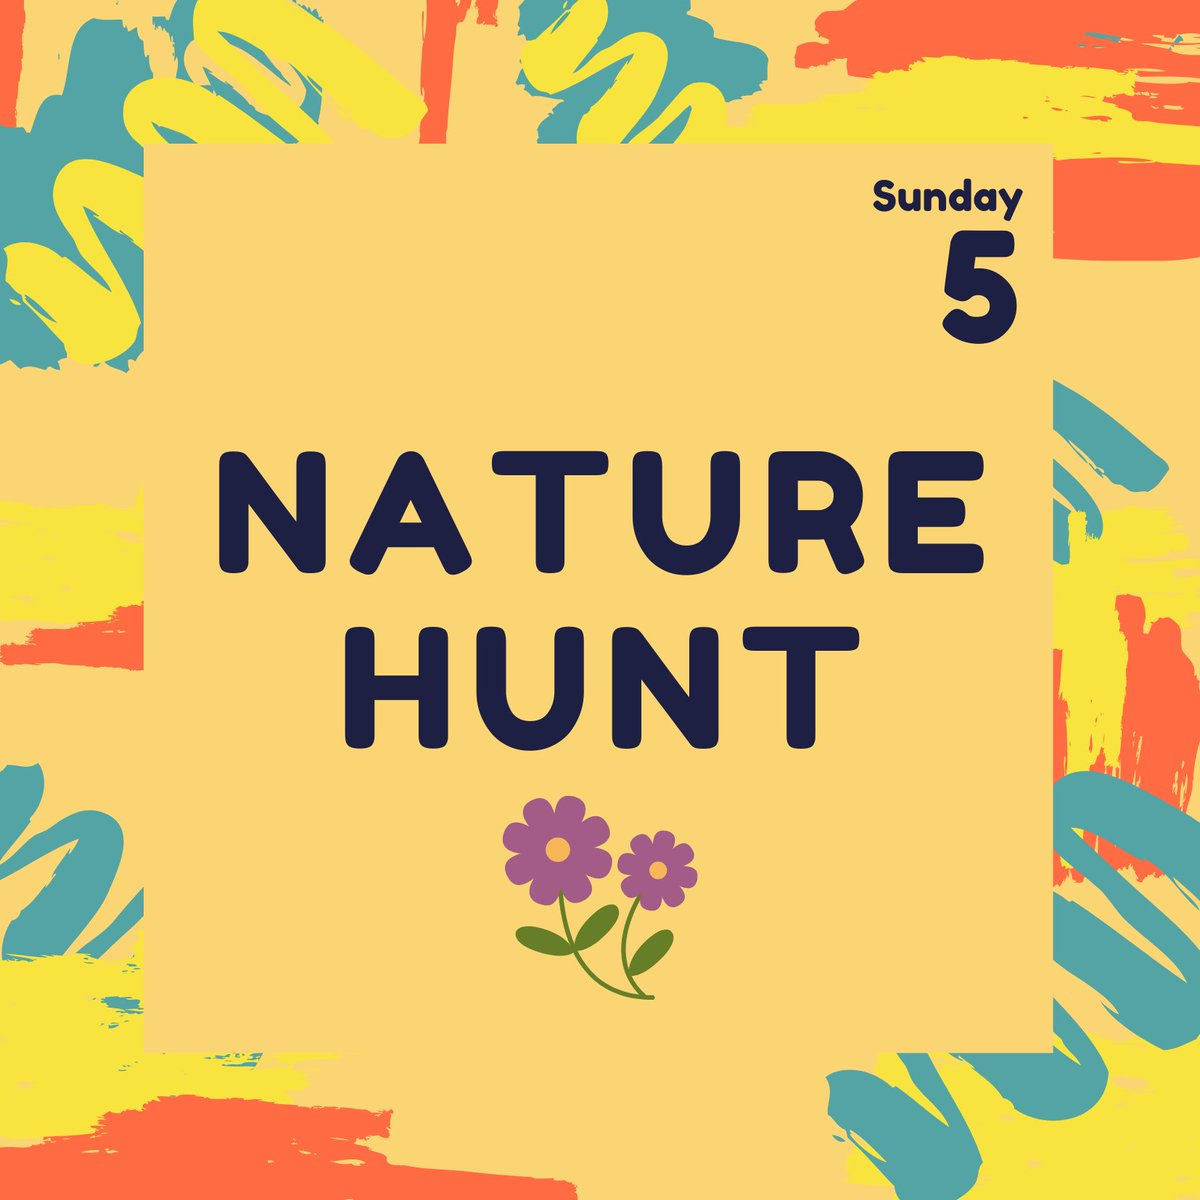 RT @ArkTOxford: BE ACTIVE, TAKE NOTICE  If you haven't had your daily exercise allowance yet, use this opportunity to go outside for a nature scavenger hunt.  Here's a link to a scavenger hunt sheet to tick off as you go! https://t.co/qYVKN78WKP   Full instructions here  https://t.co/viLFxegKSK